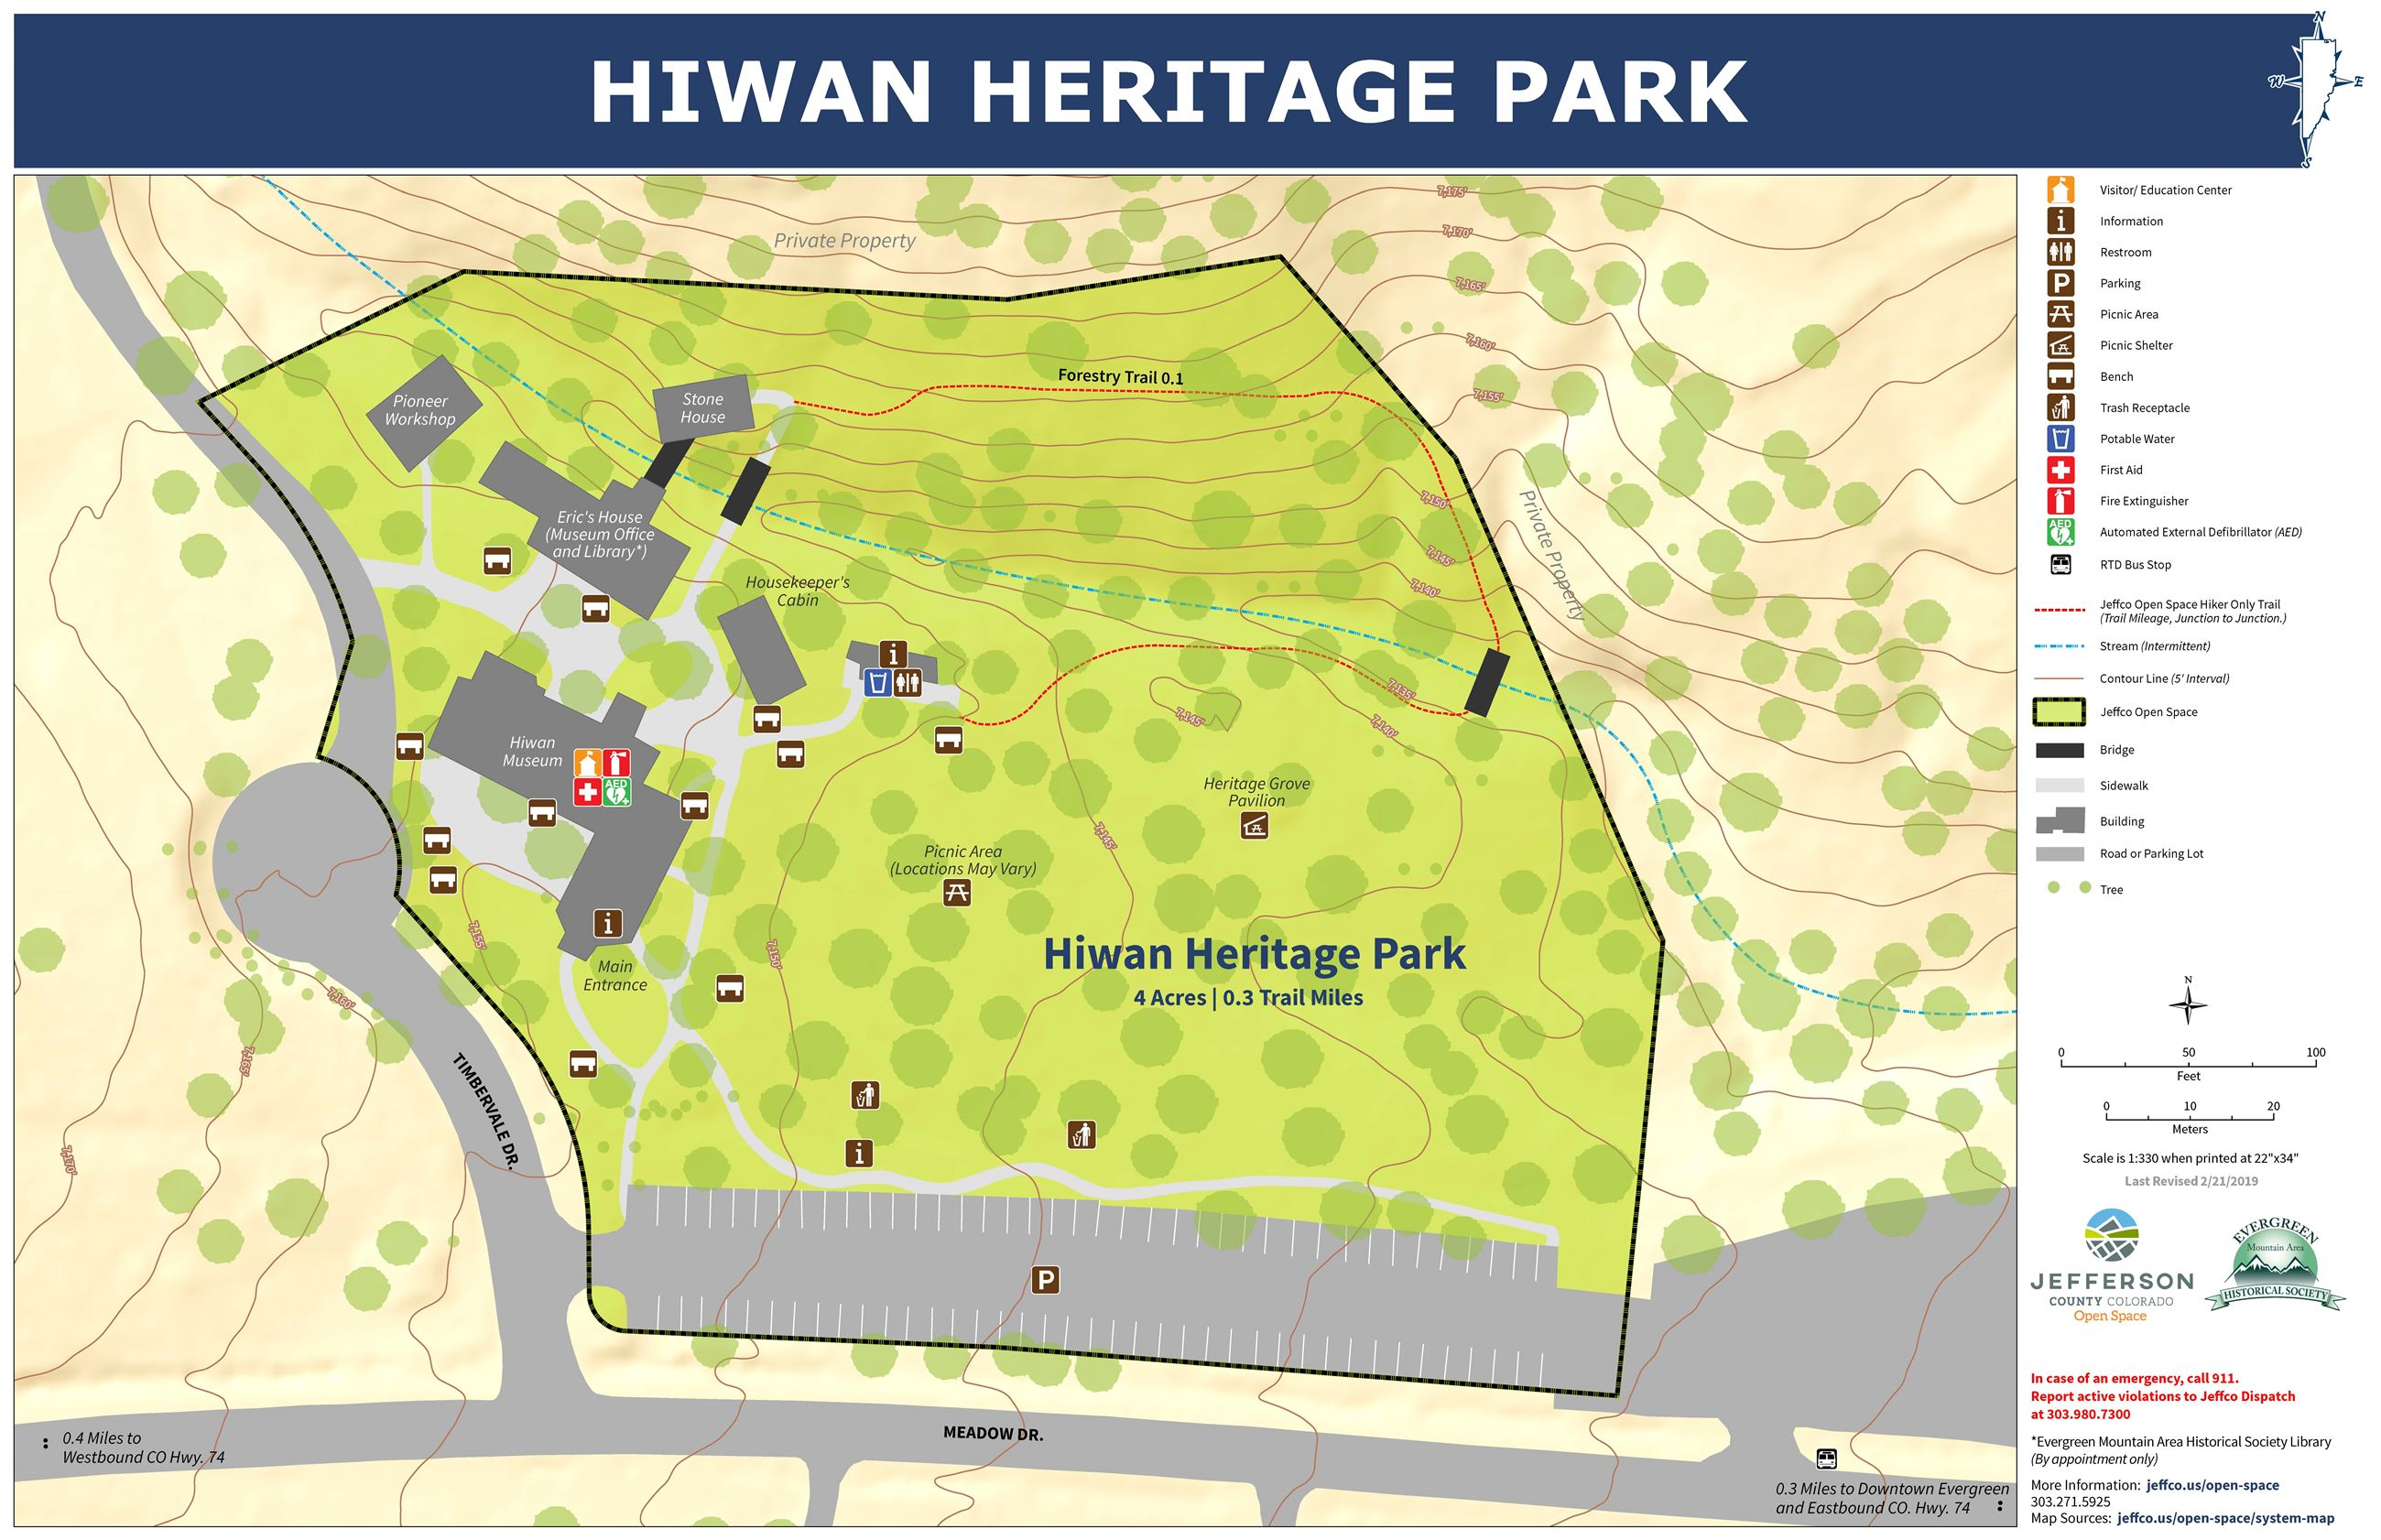 Hiwan Heritage Park Map